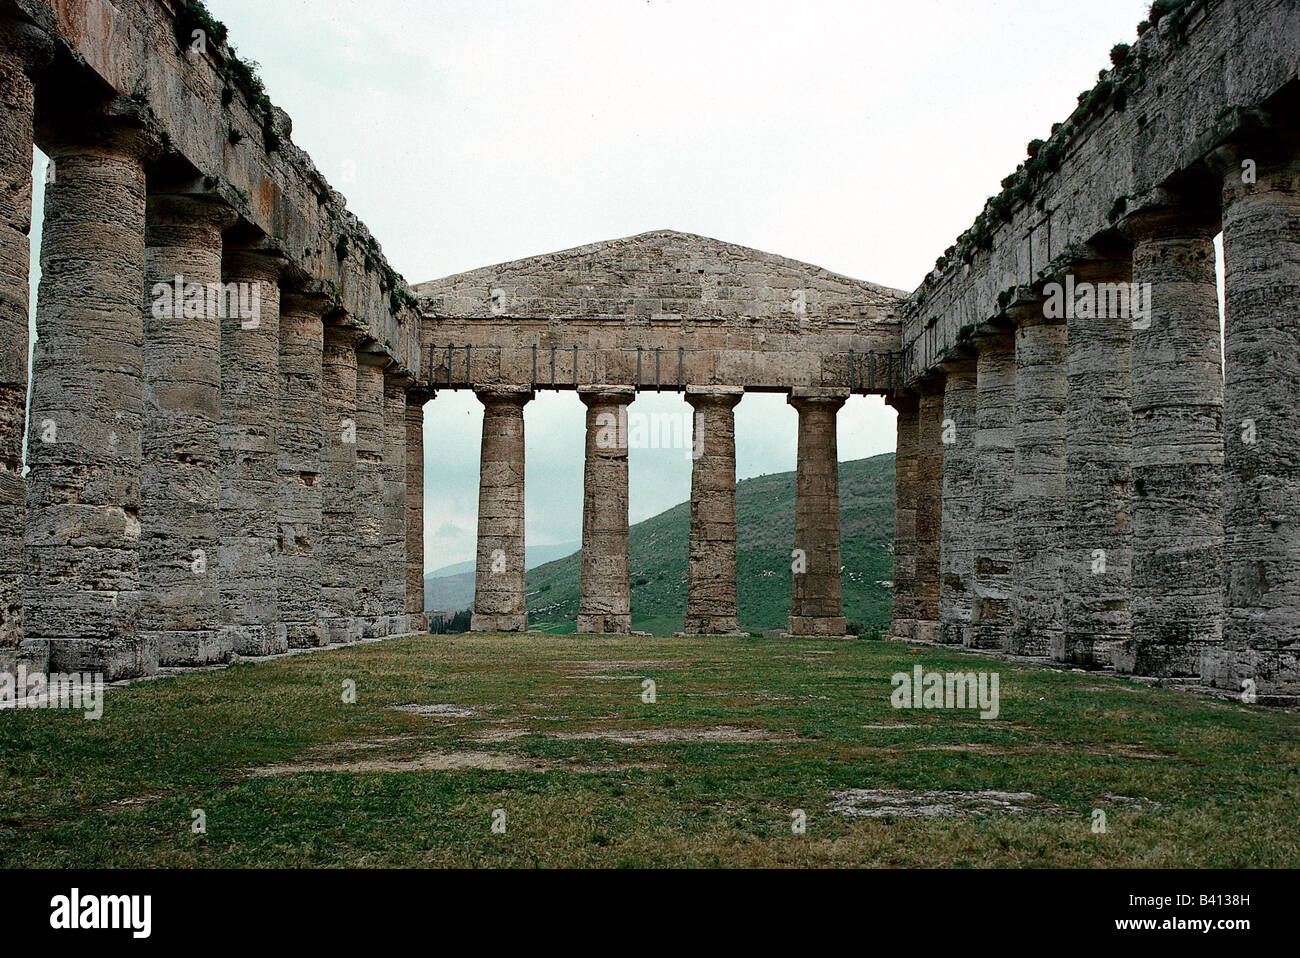 geography / travel, Italy, Sicily, Segesta (Egesta), Greek colony, founded 7th or 6th century BC, doric temple, Stock Photo